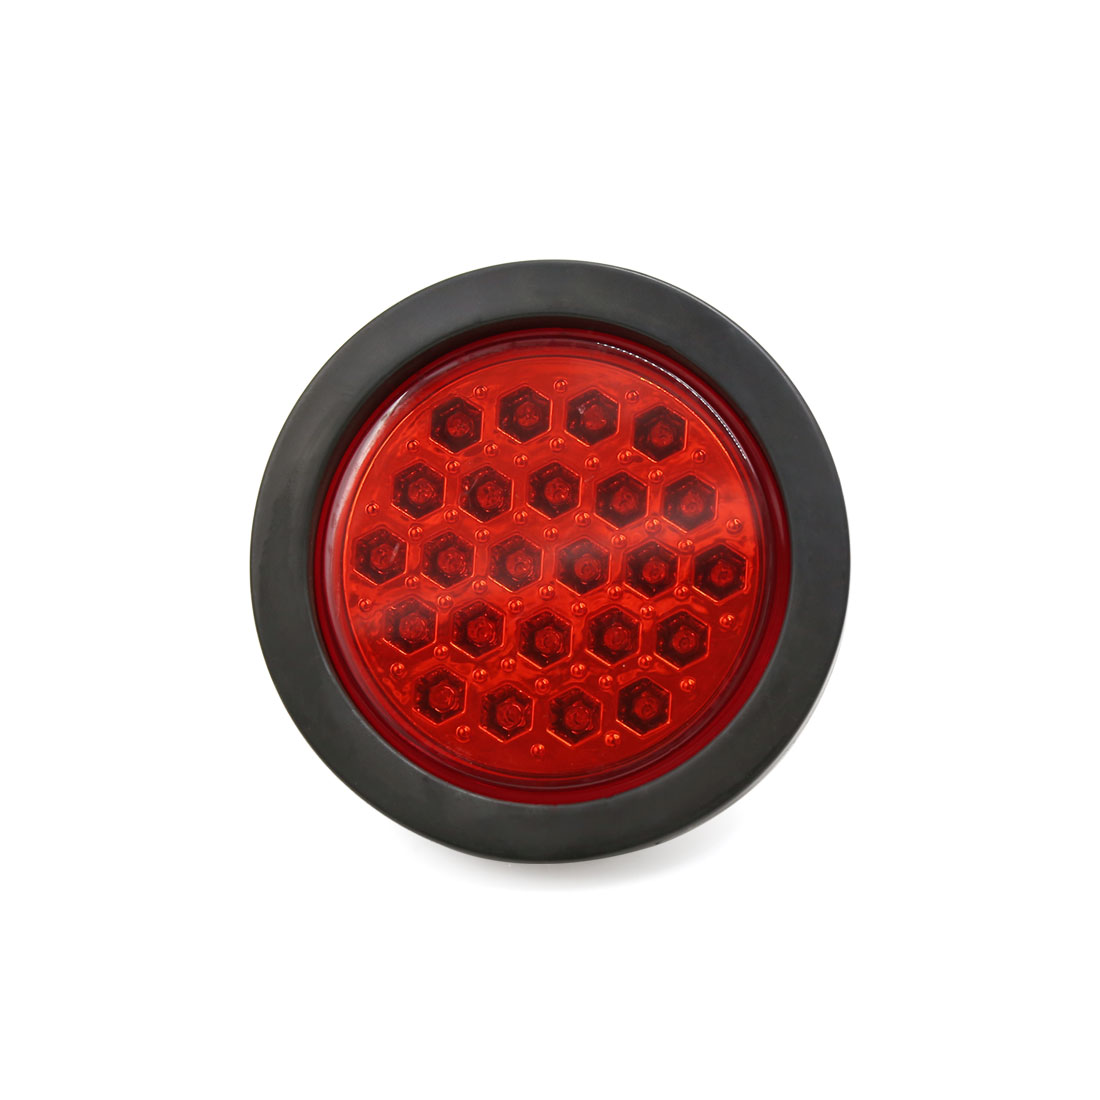 Trailer Truck Round Rubber Grommet 24 LED Red Turn Tail Light Brake Lamp DC 24V